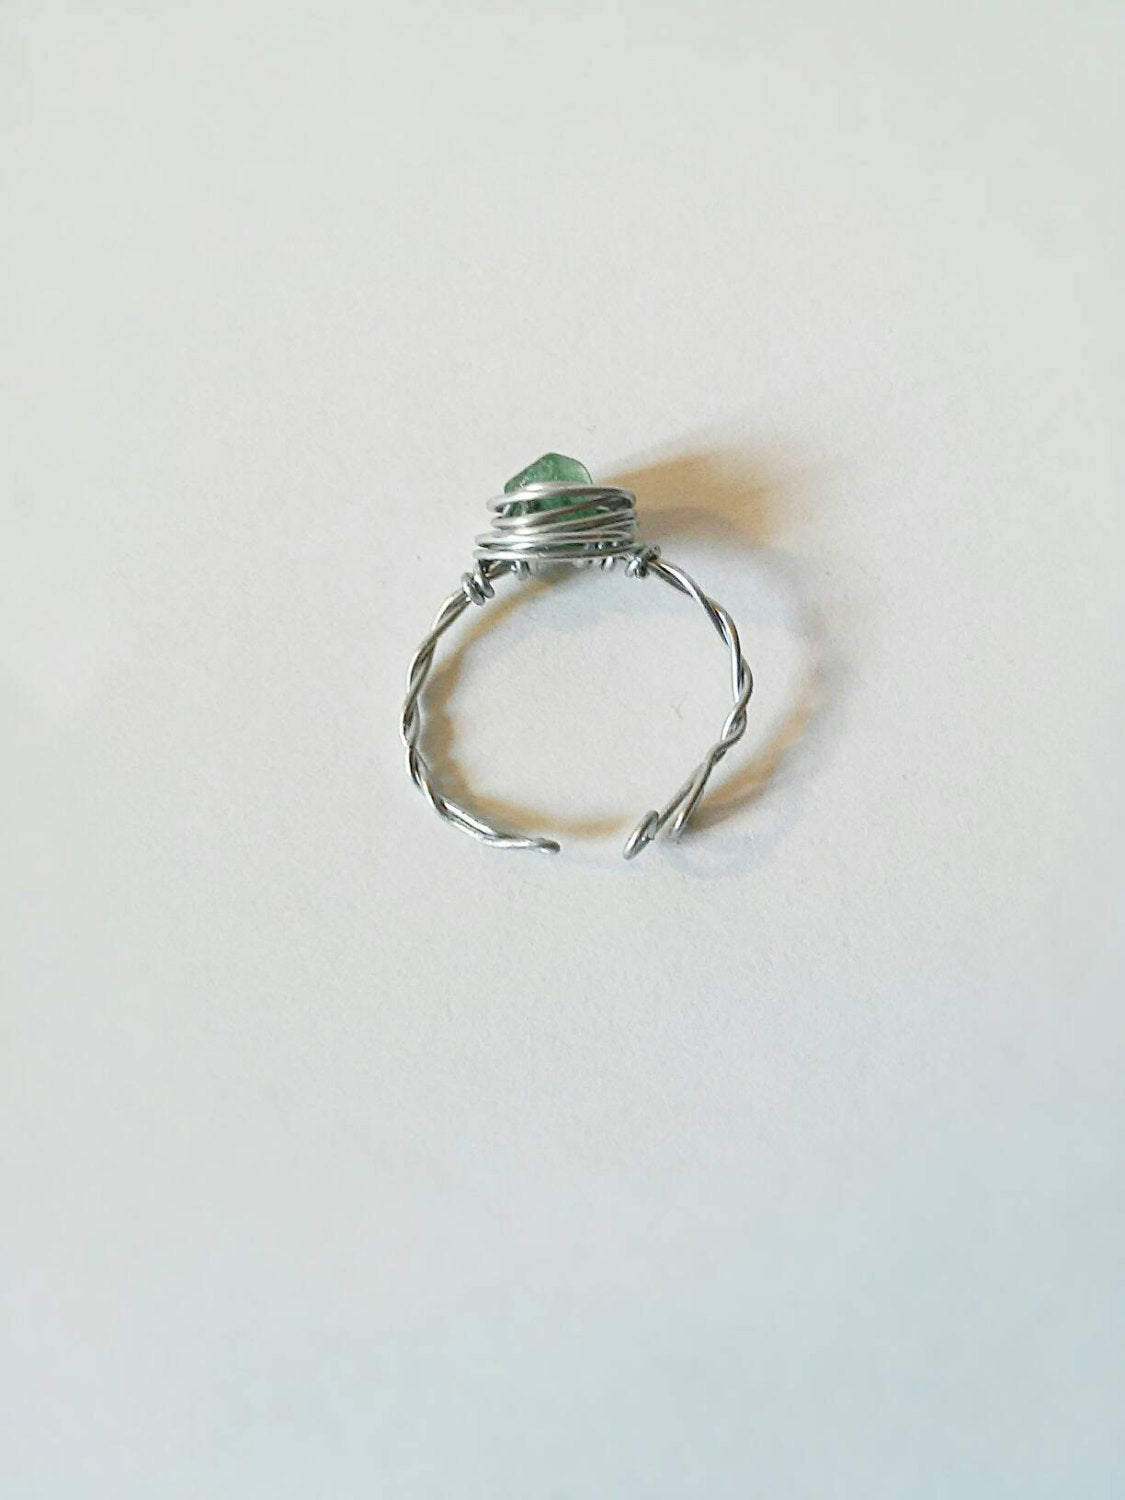 Aventurine stone ring set, boho ring,wire wrapped ring,hippie ring, adjustable ring, boho adjustable ring, hippie green stone ring,boho ring